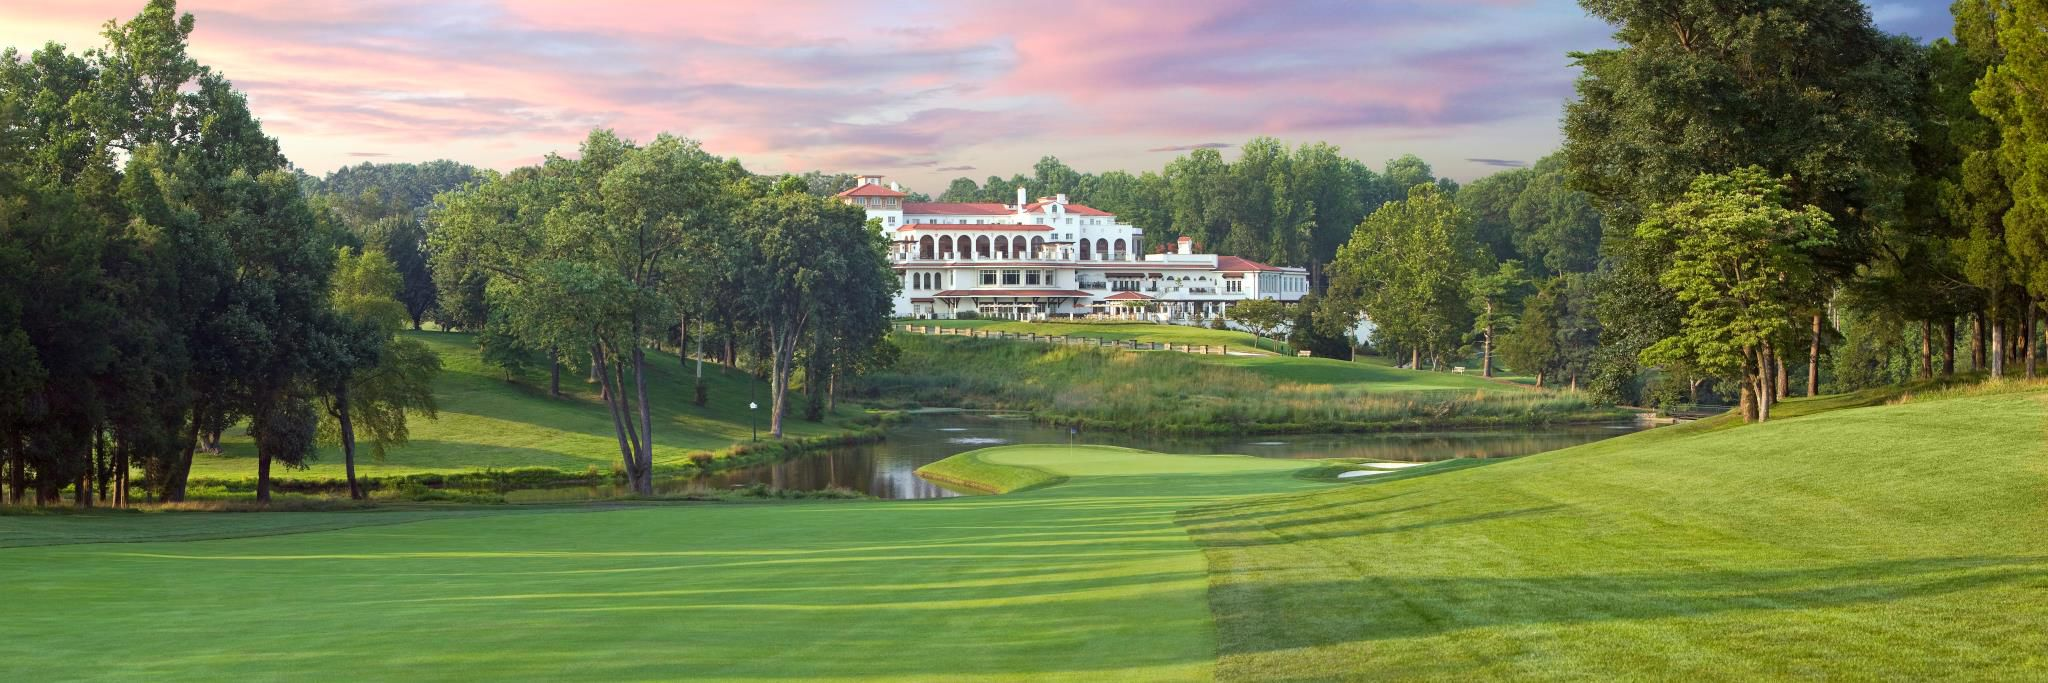 Congressional country club cover picture